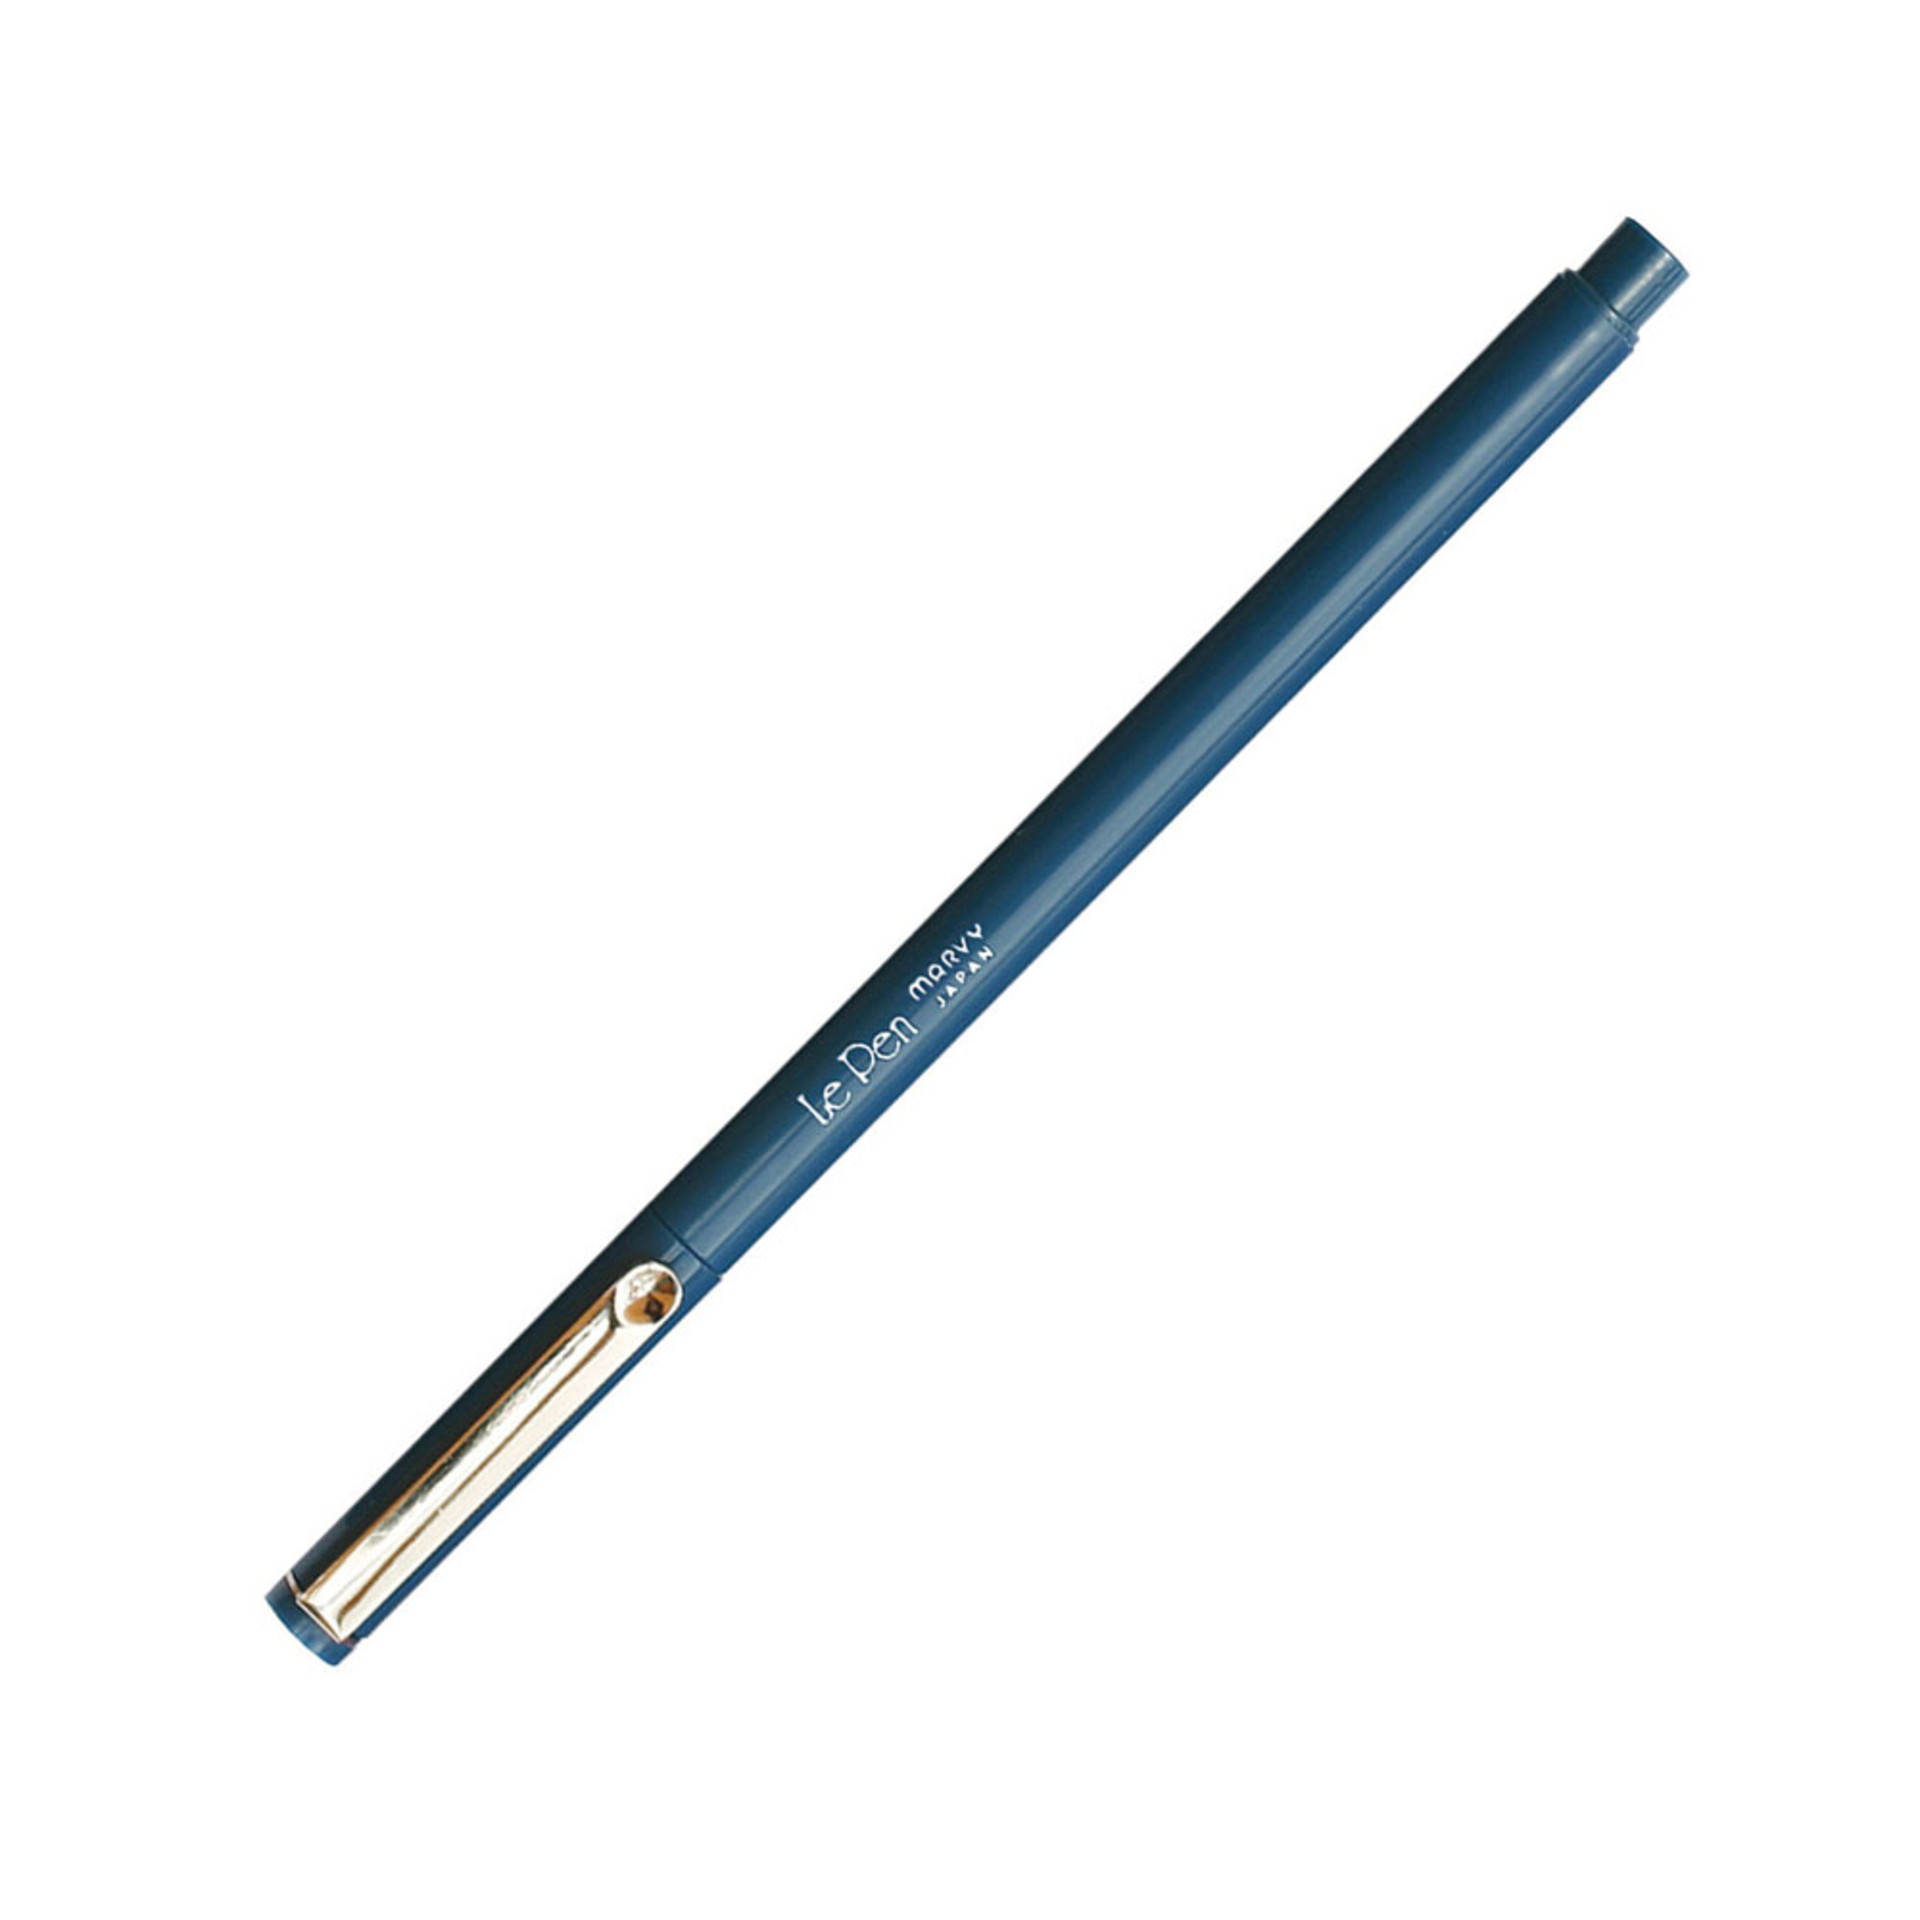 Uchida Marvy Le Pen Micro-Fine Point .3mm Pen – Orient Blue